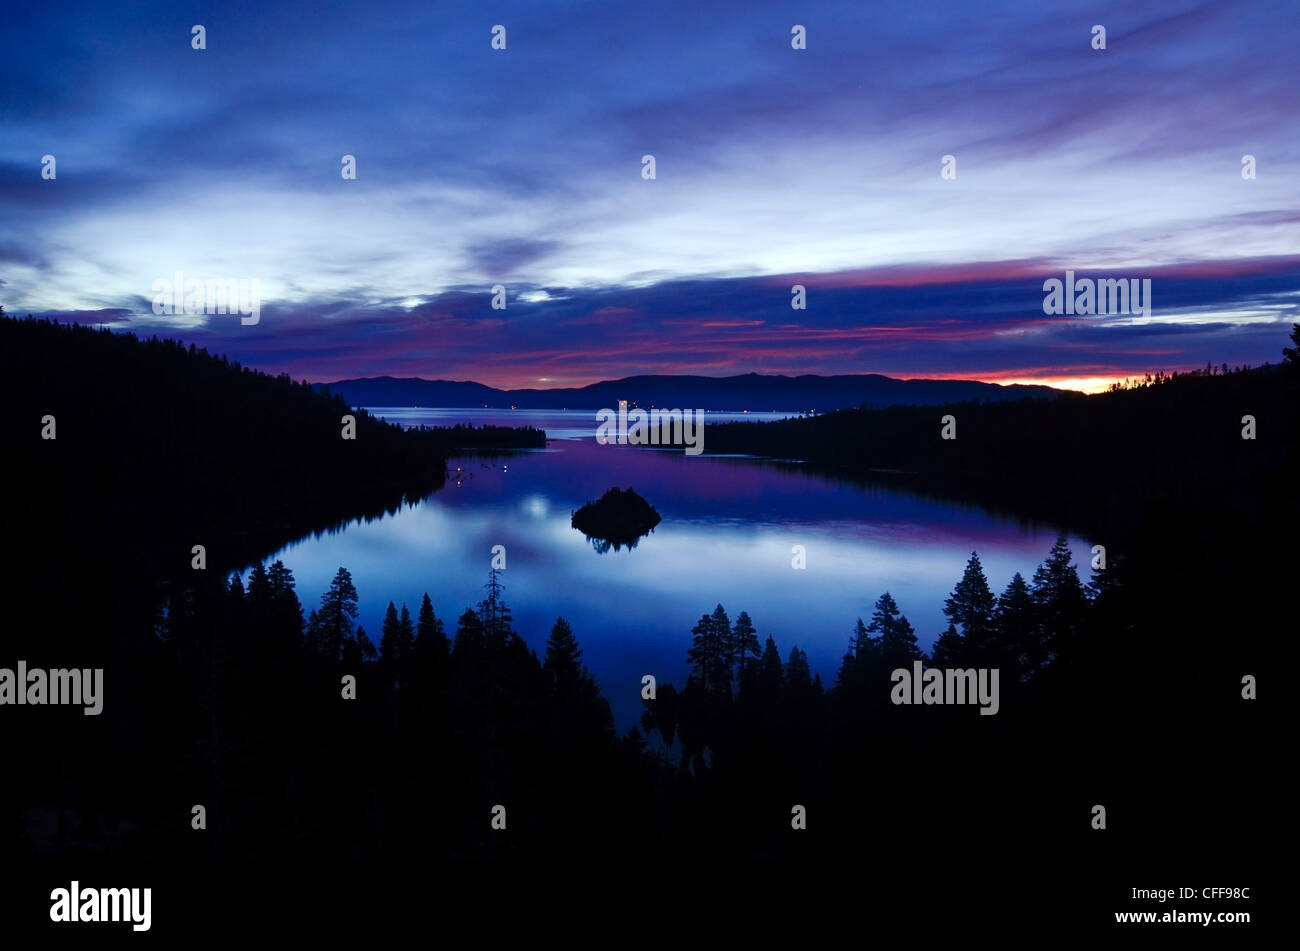 A predawn view of Emerald Bay just before sunrise in Lake Tahoe, California. Stock Photo